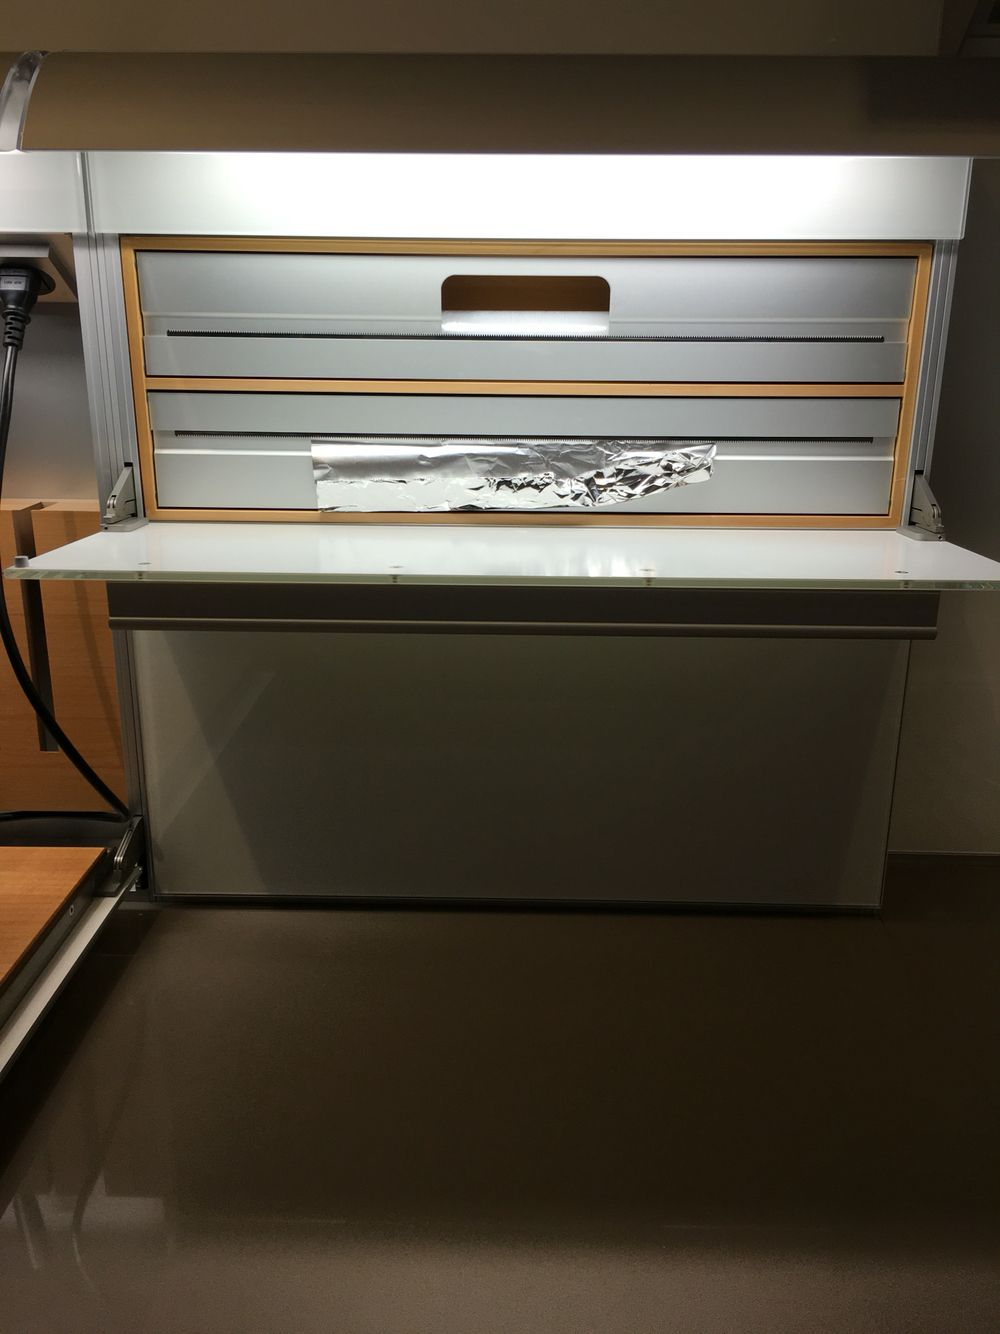 Bulthaup function box with roll holder Bulthaup flagship Kaohsiung Taiwan